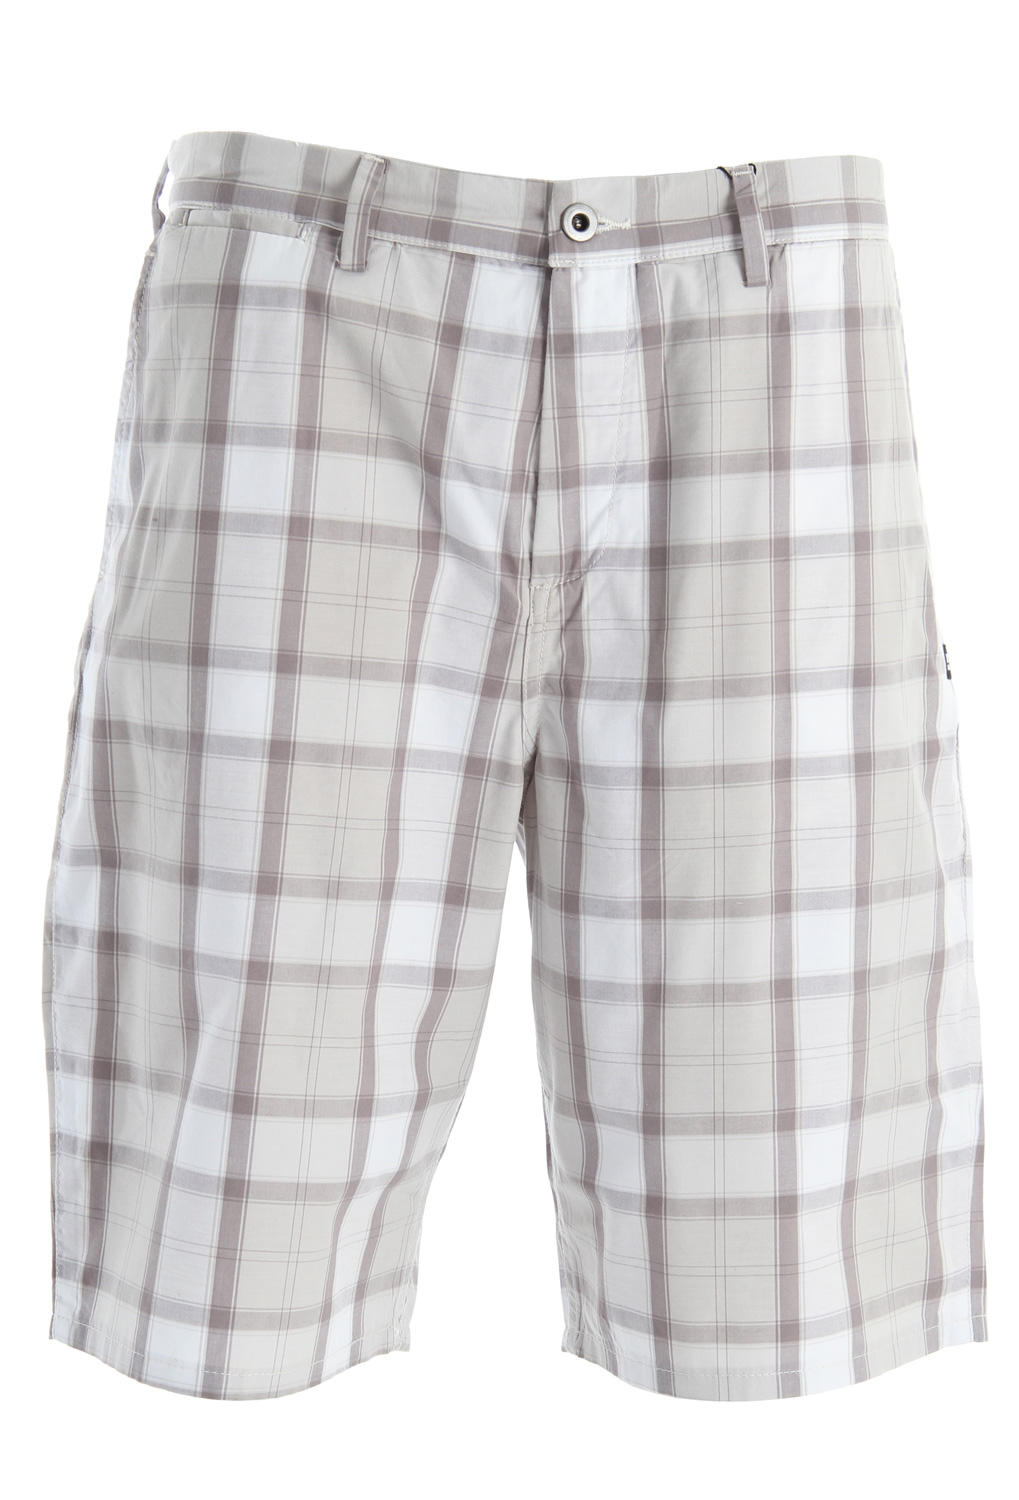 "Skateboard Key Features of the DC Countdown Shorts: Yarn dye small plaid walkshort with classic chino fit with rear welt pockets and front coin pocket YKK zip fly Woven label trim detail 22"" outseam 70% cotton/30% polyester - $31.95"